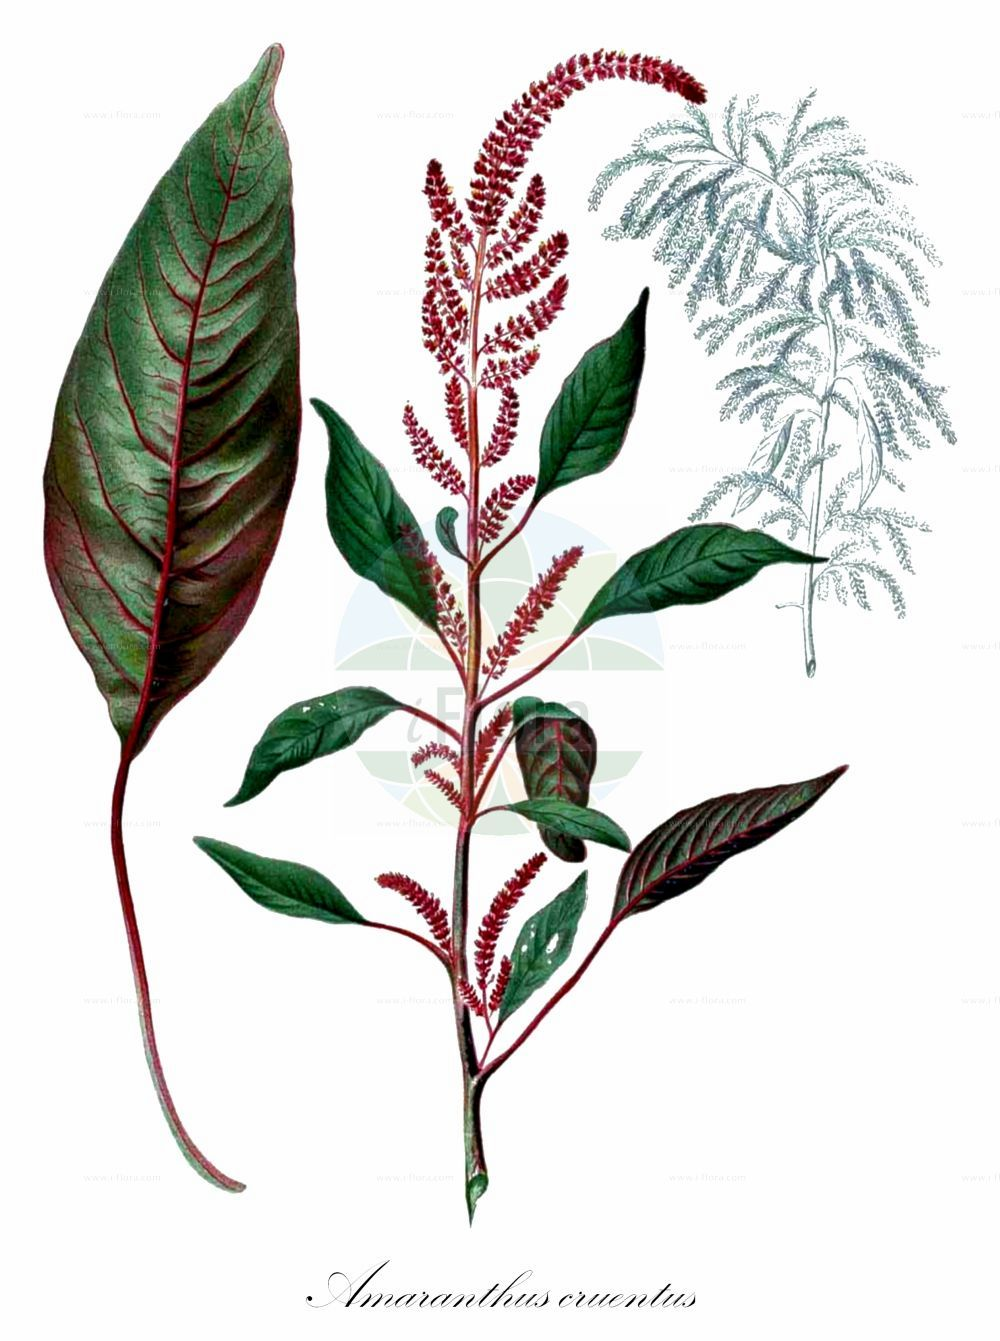 Historische Abbildung von Amaranthus cruentus. Das Bild zeigt Blatt, Bluete, Frucht und Same. ---- Historical Drawing of Amaranthus cruentus.The image is showing leaf, flower, fruit and seed.(Amaranthus cruentus,Amaranthus paniculatus,Amaranthus paniculatus var. cruentus,Amaranthus,Fuchsschwanz,Pigweed,Amaranthaceae,Fuchsschwanzgewaechse,Pigweed family,Blatt,Bluete,Frucht,Same,leaf,flower,fruit,seed,Blanco (1837f))